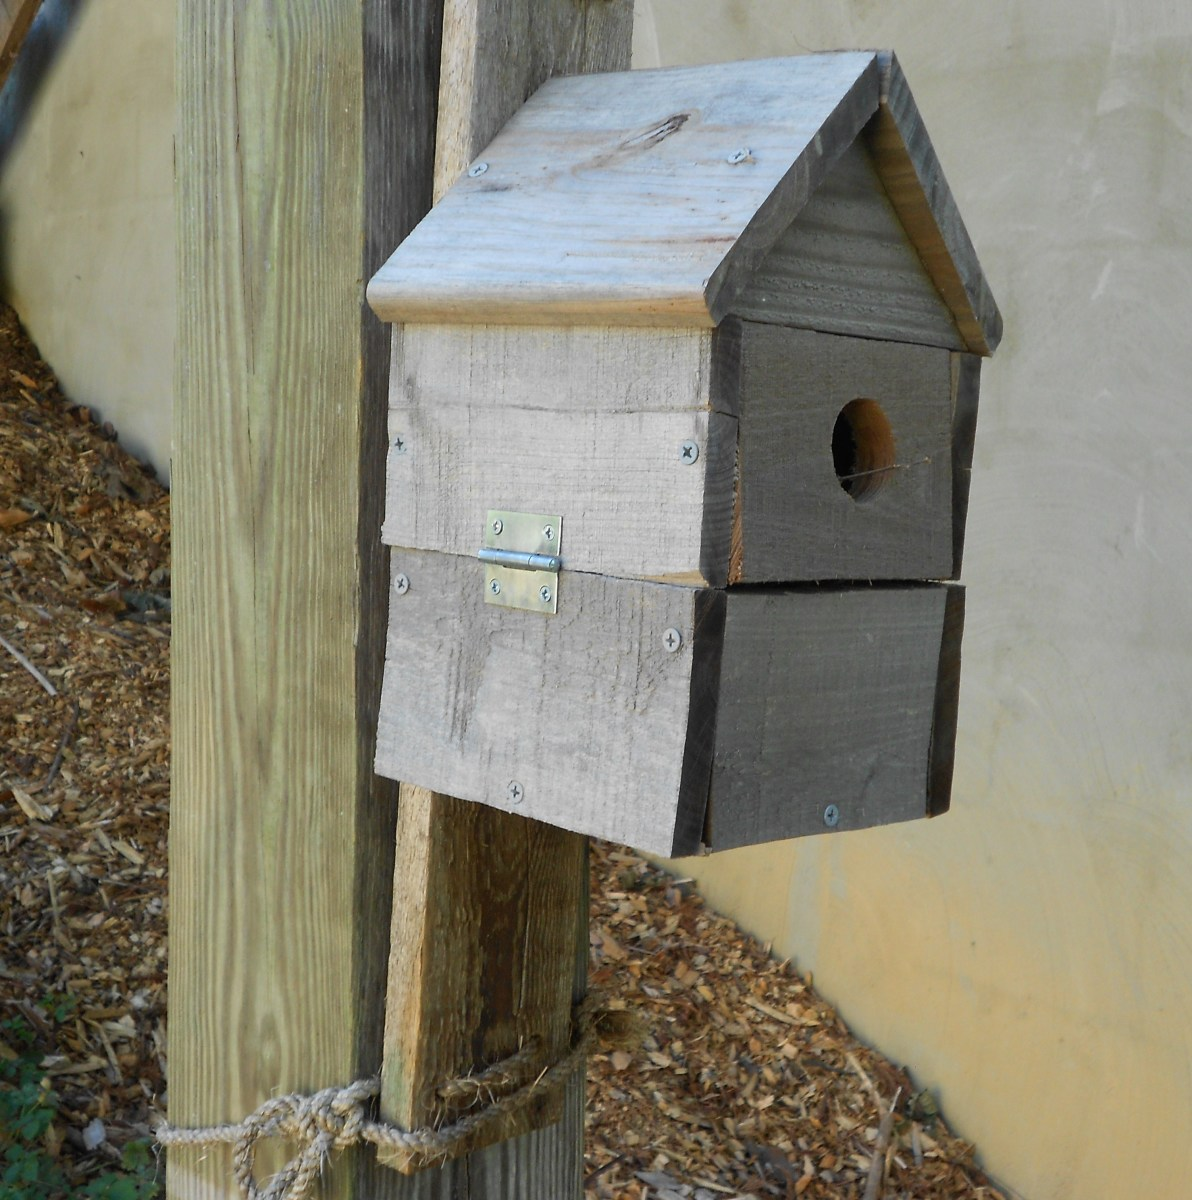 This bluebird house is easy to build from reclaimed pallet wood.  This one is a mix of yellow pine and red oak.